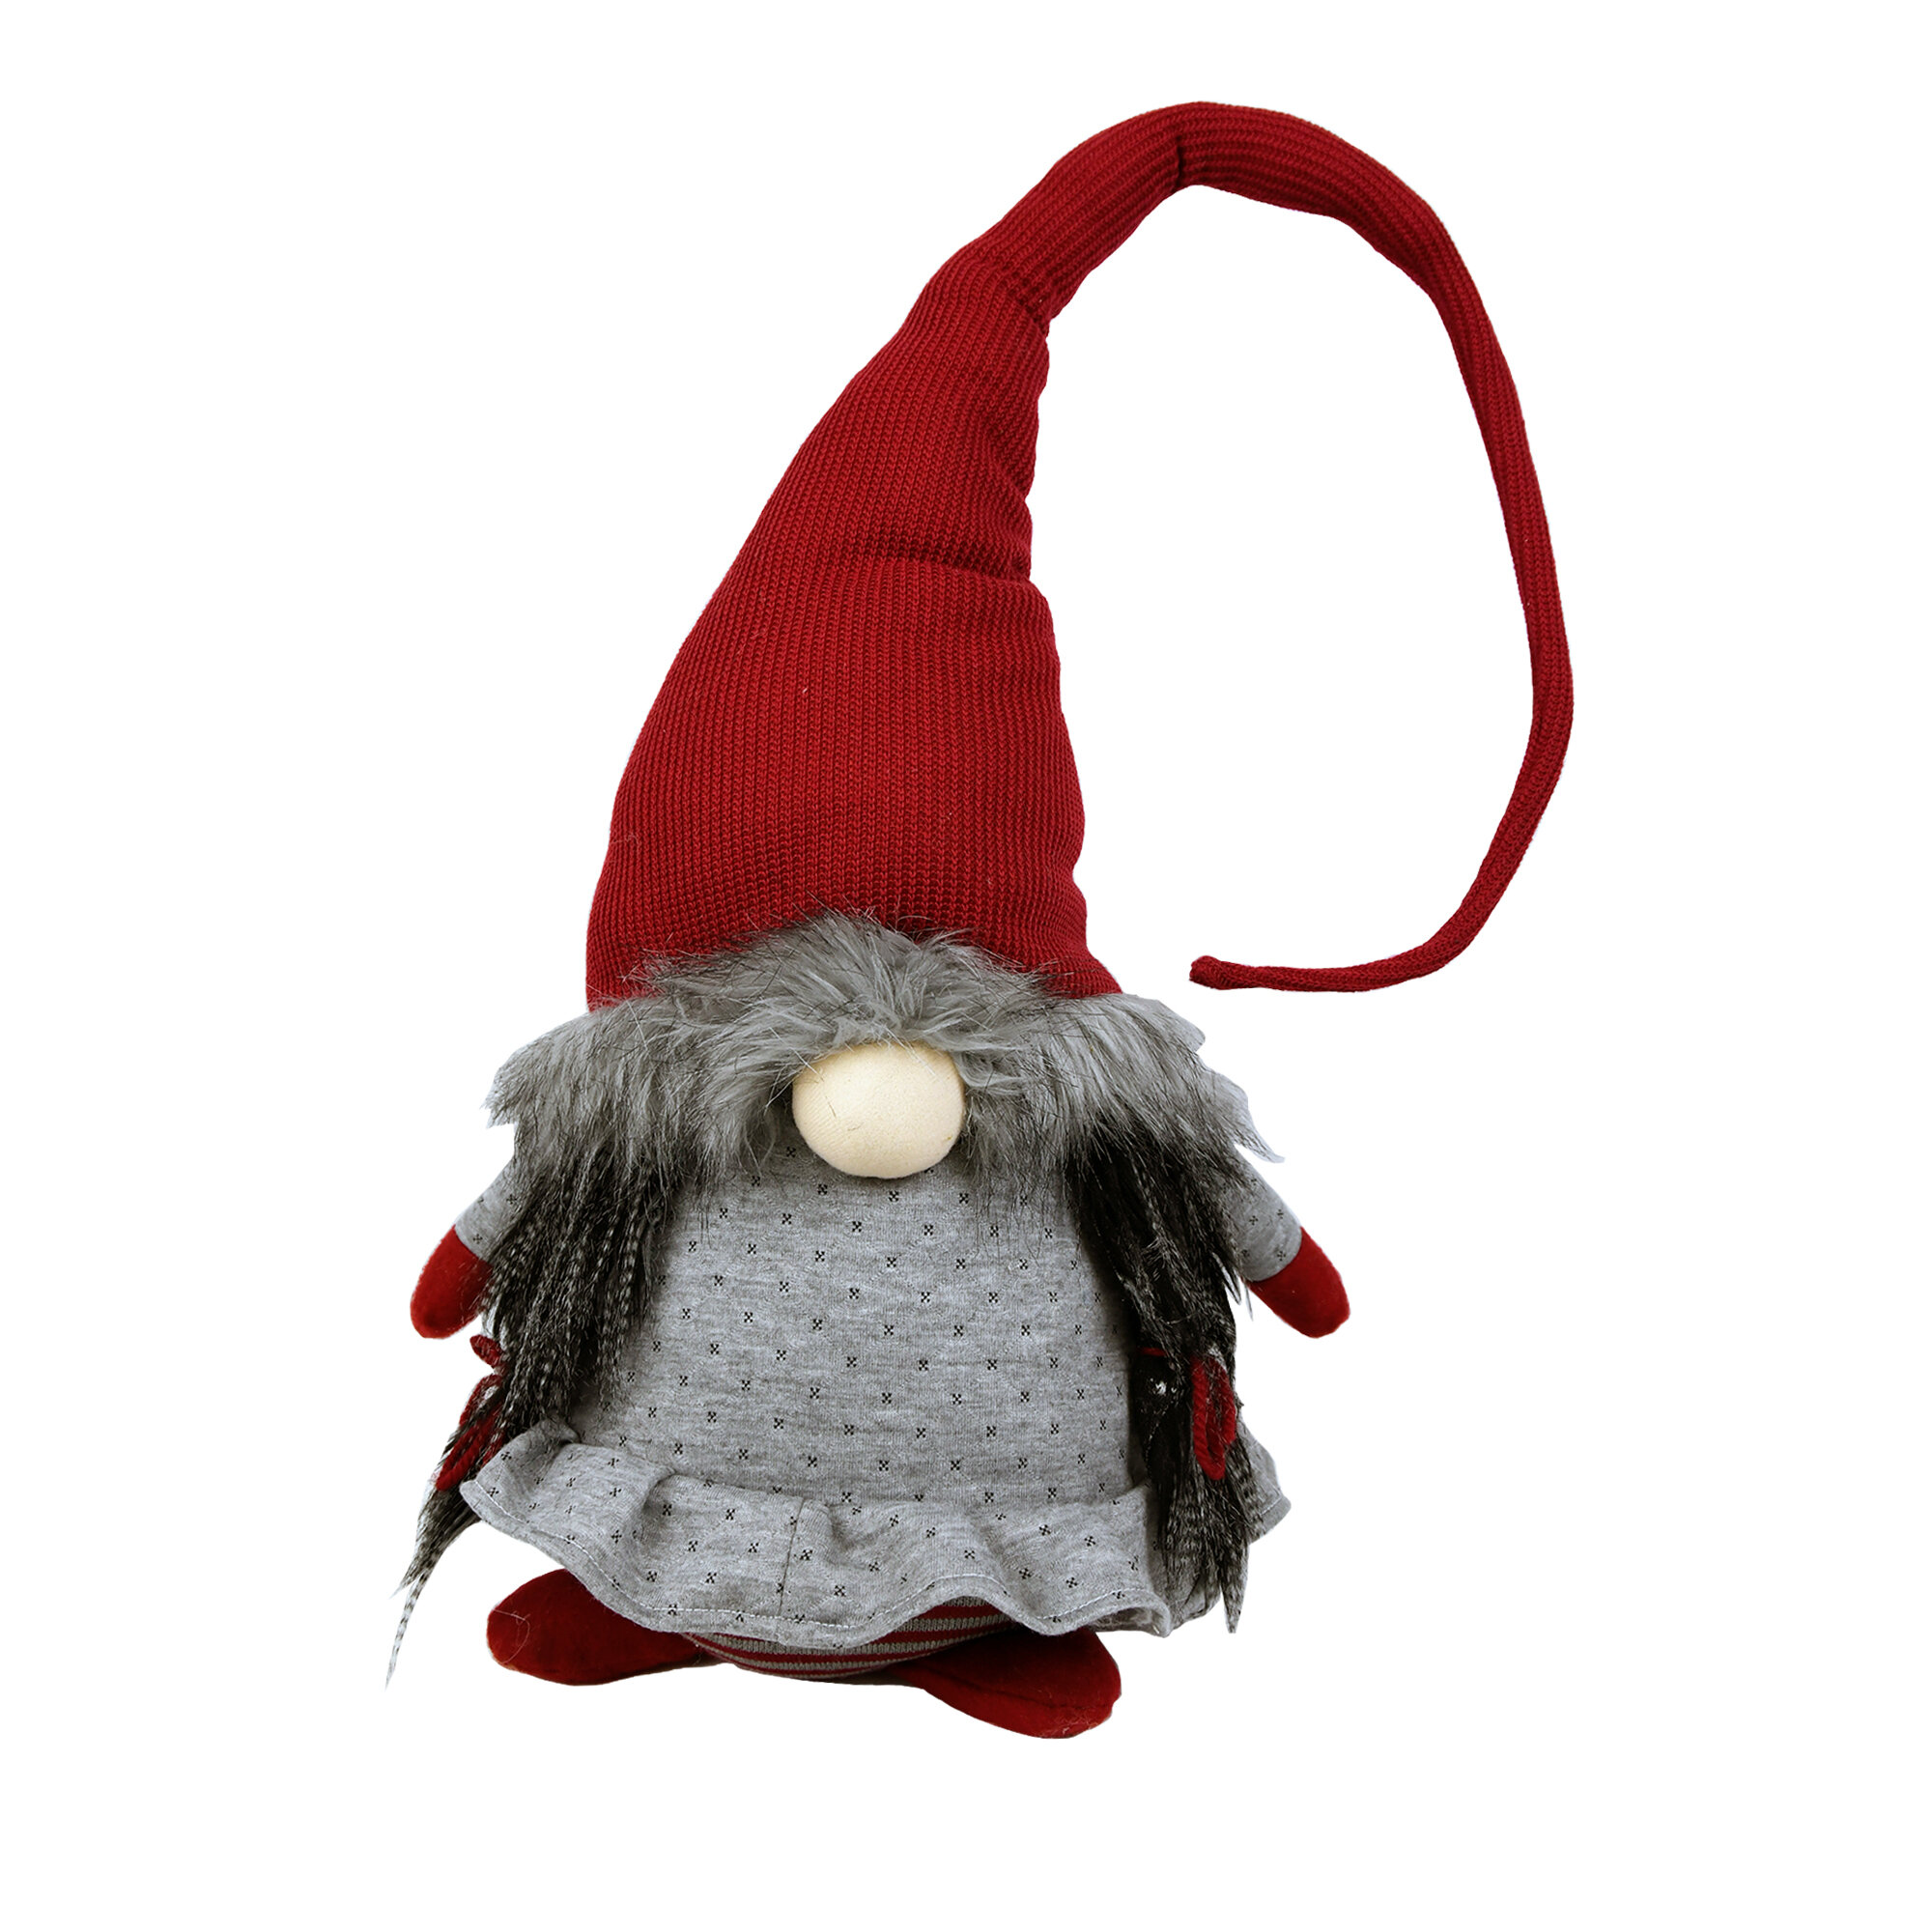 The Holiday Aisle Standing Gnome Gunnvor Stuffed Holiday